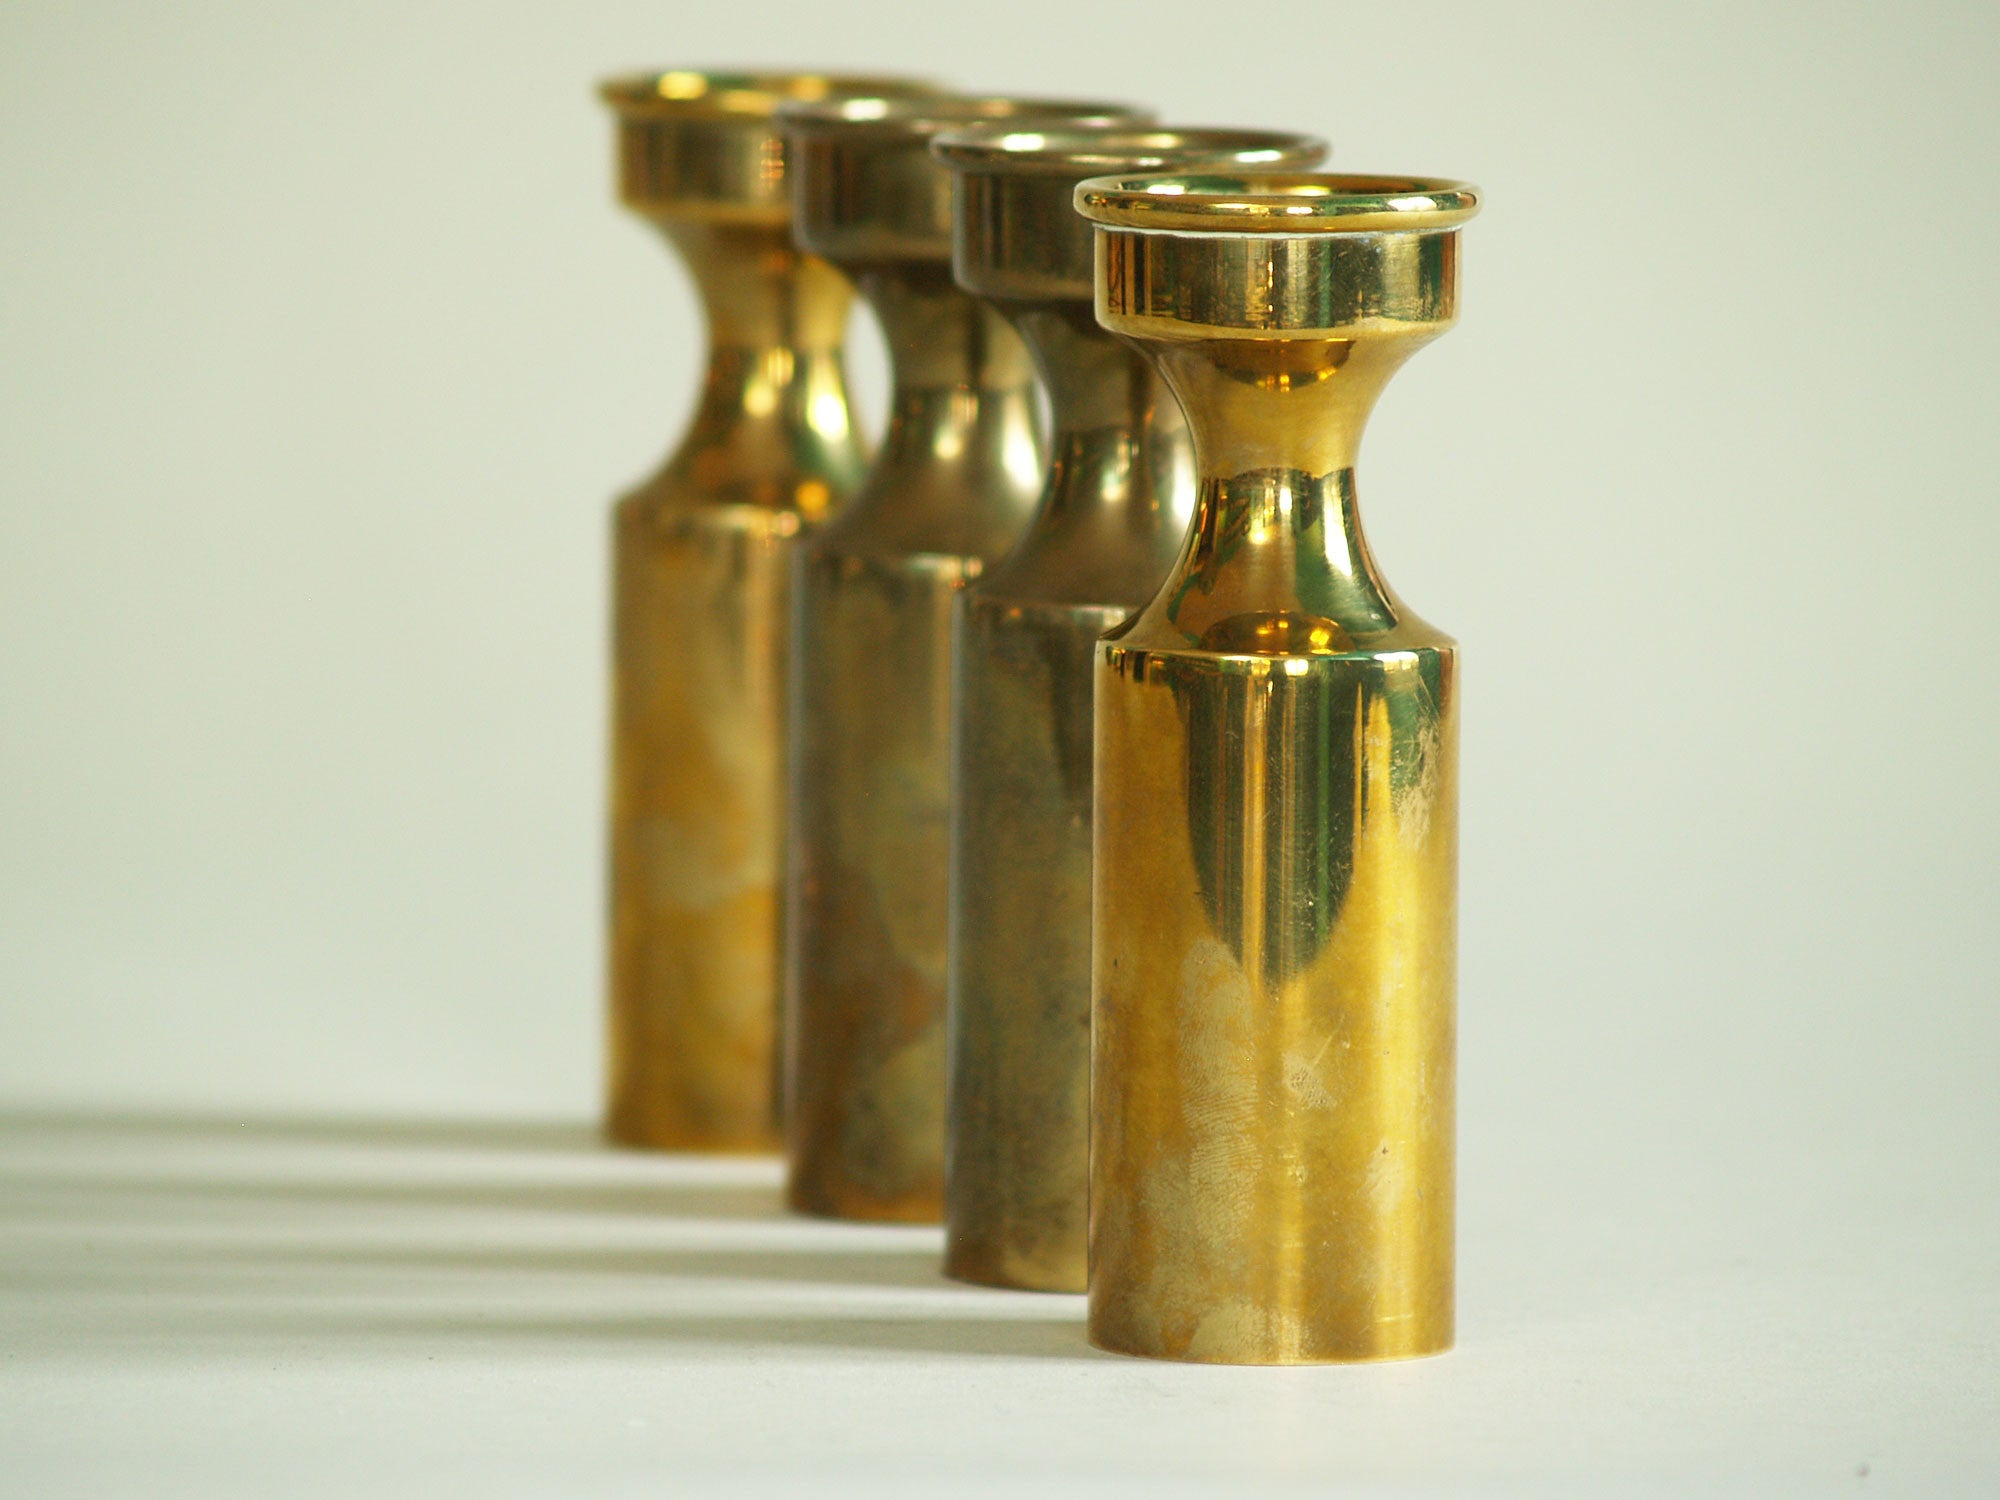 Série de quatre flambeaux modernistes, Danemark (vers 1950)..Set of 4 modernist Candle holders, Denmark (circa 1950)